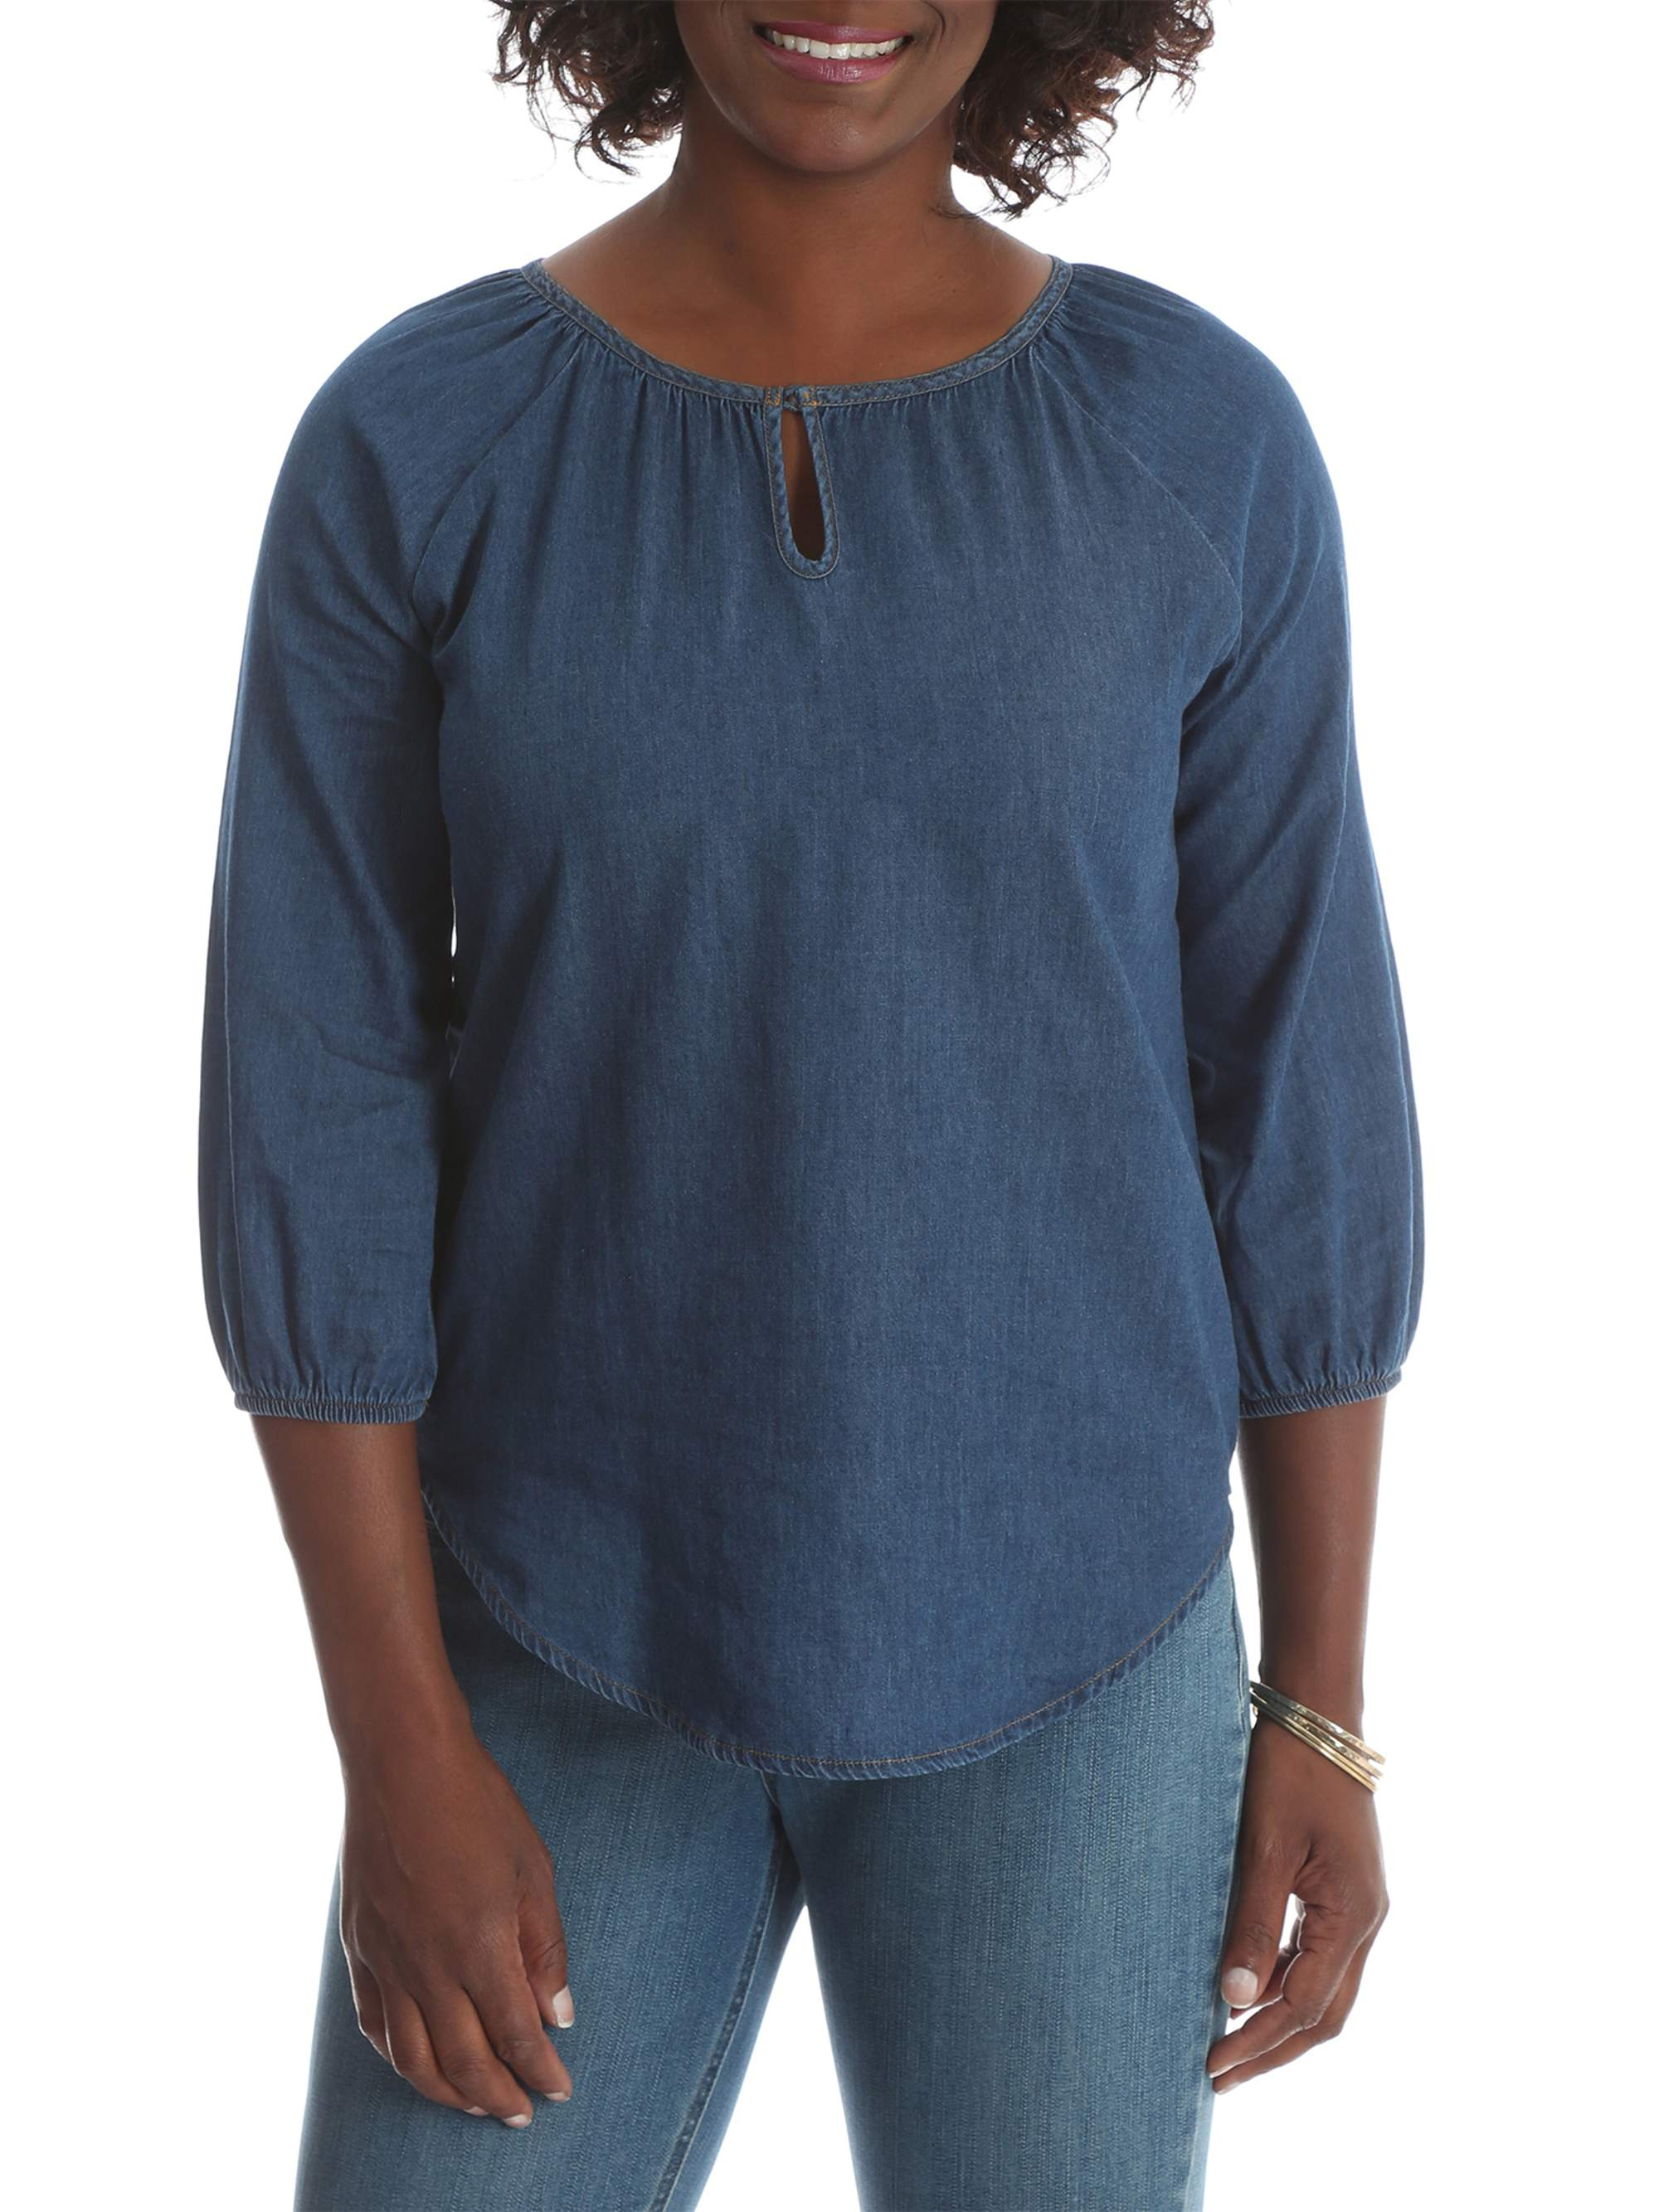 ea6f9622dbb13 Riders by Lee - Women s 3 4 Sleeve Denim Pullover Top - Walmart.com